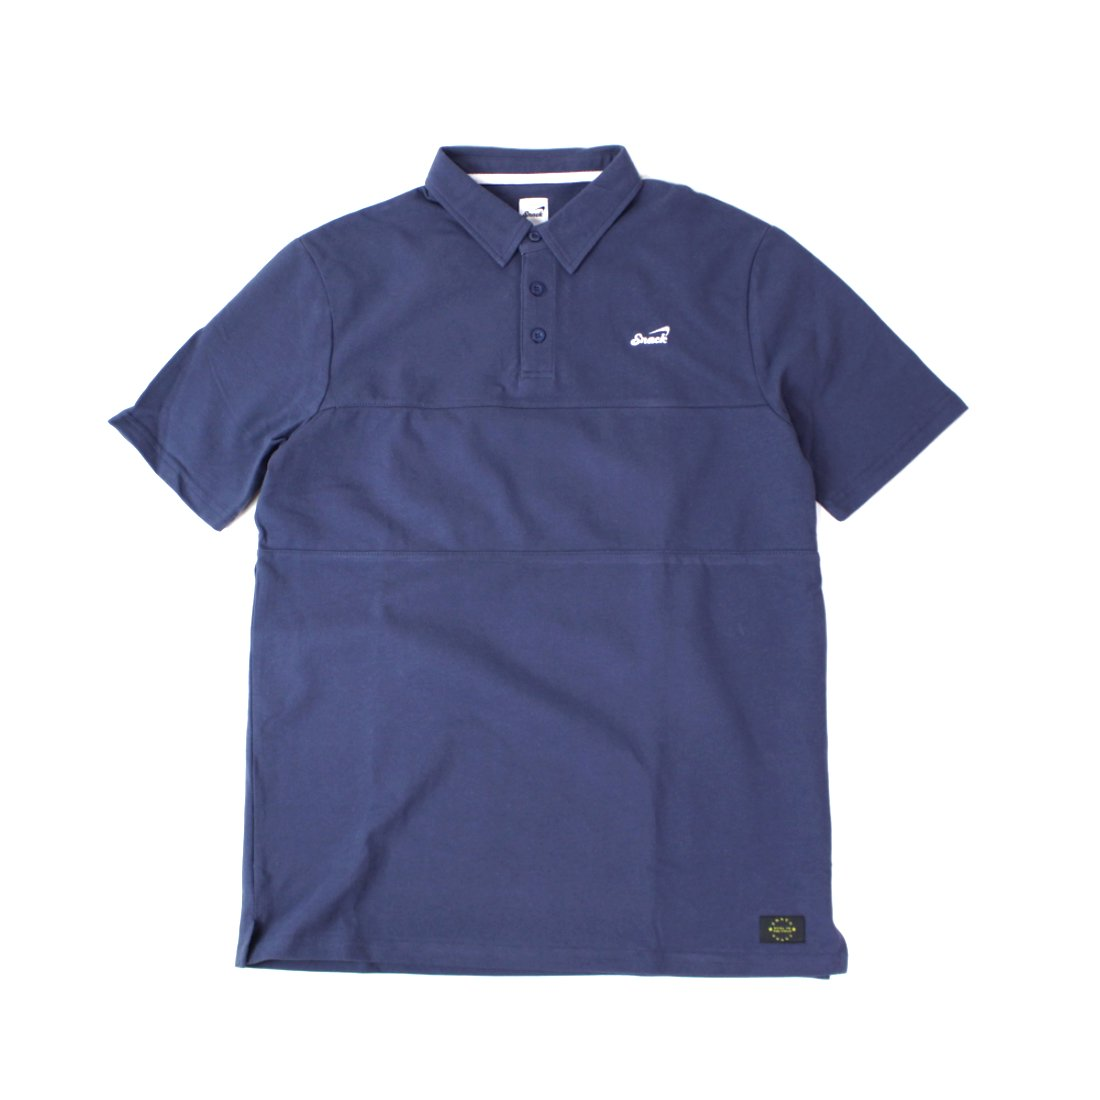 【SNACK SKATEBOARDS】ALIVE POLO SHIRTS